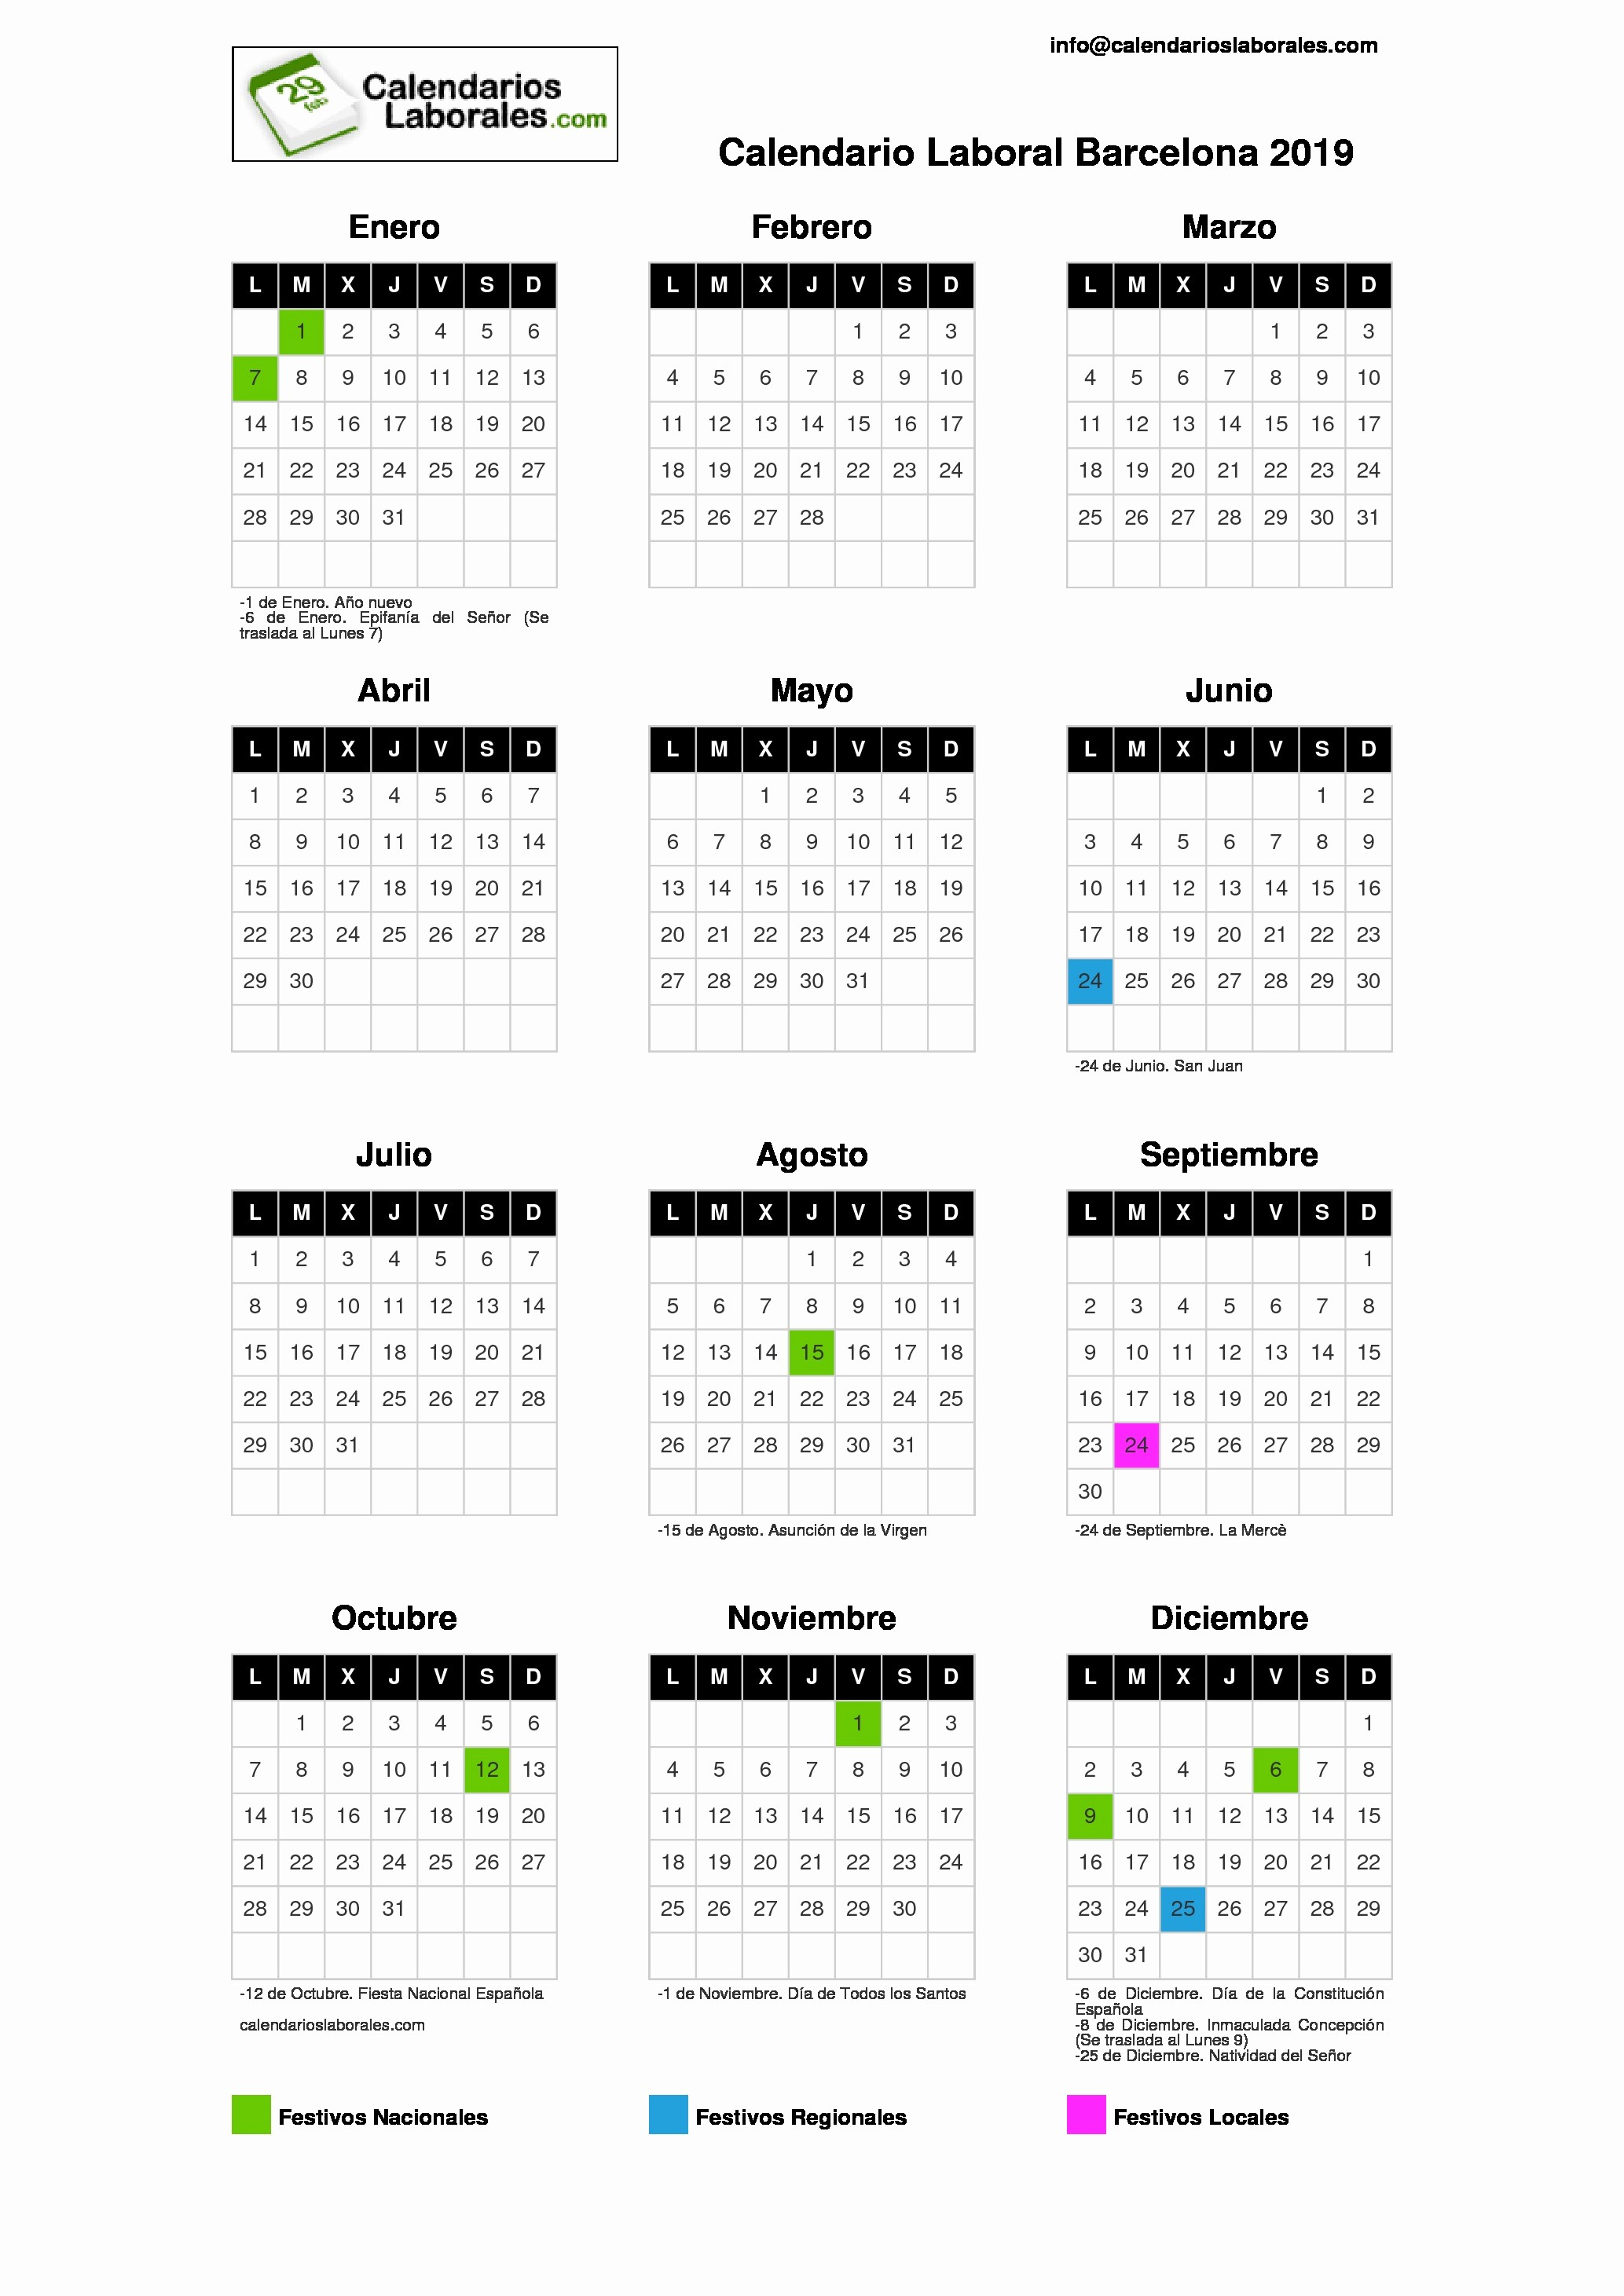 Calendario Laboral 2019 Barcelona 2019 Calendario Laboral Barcelona 2019